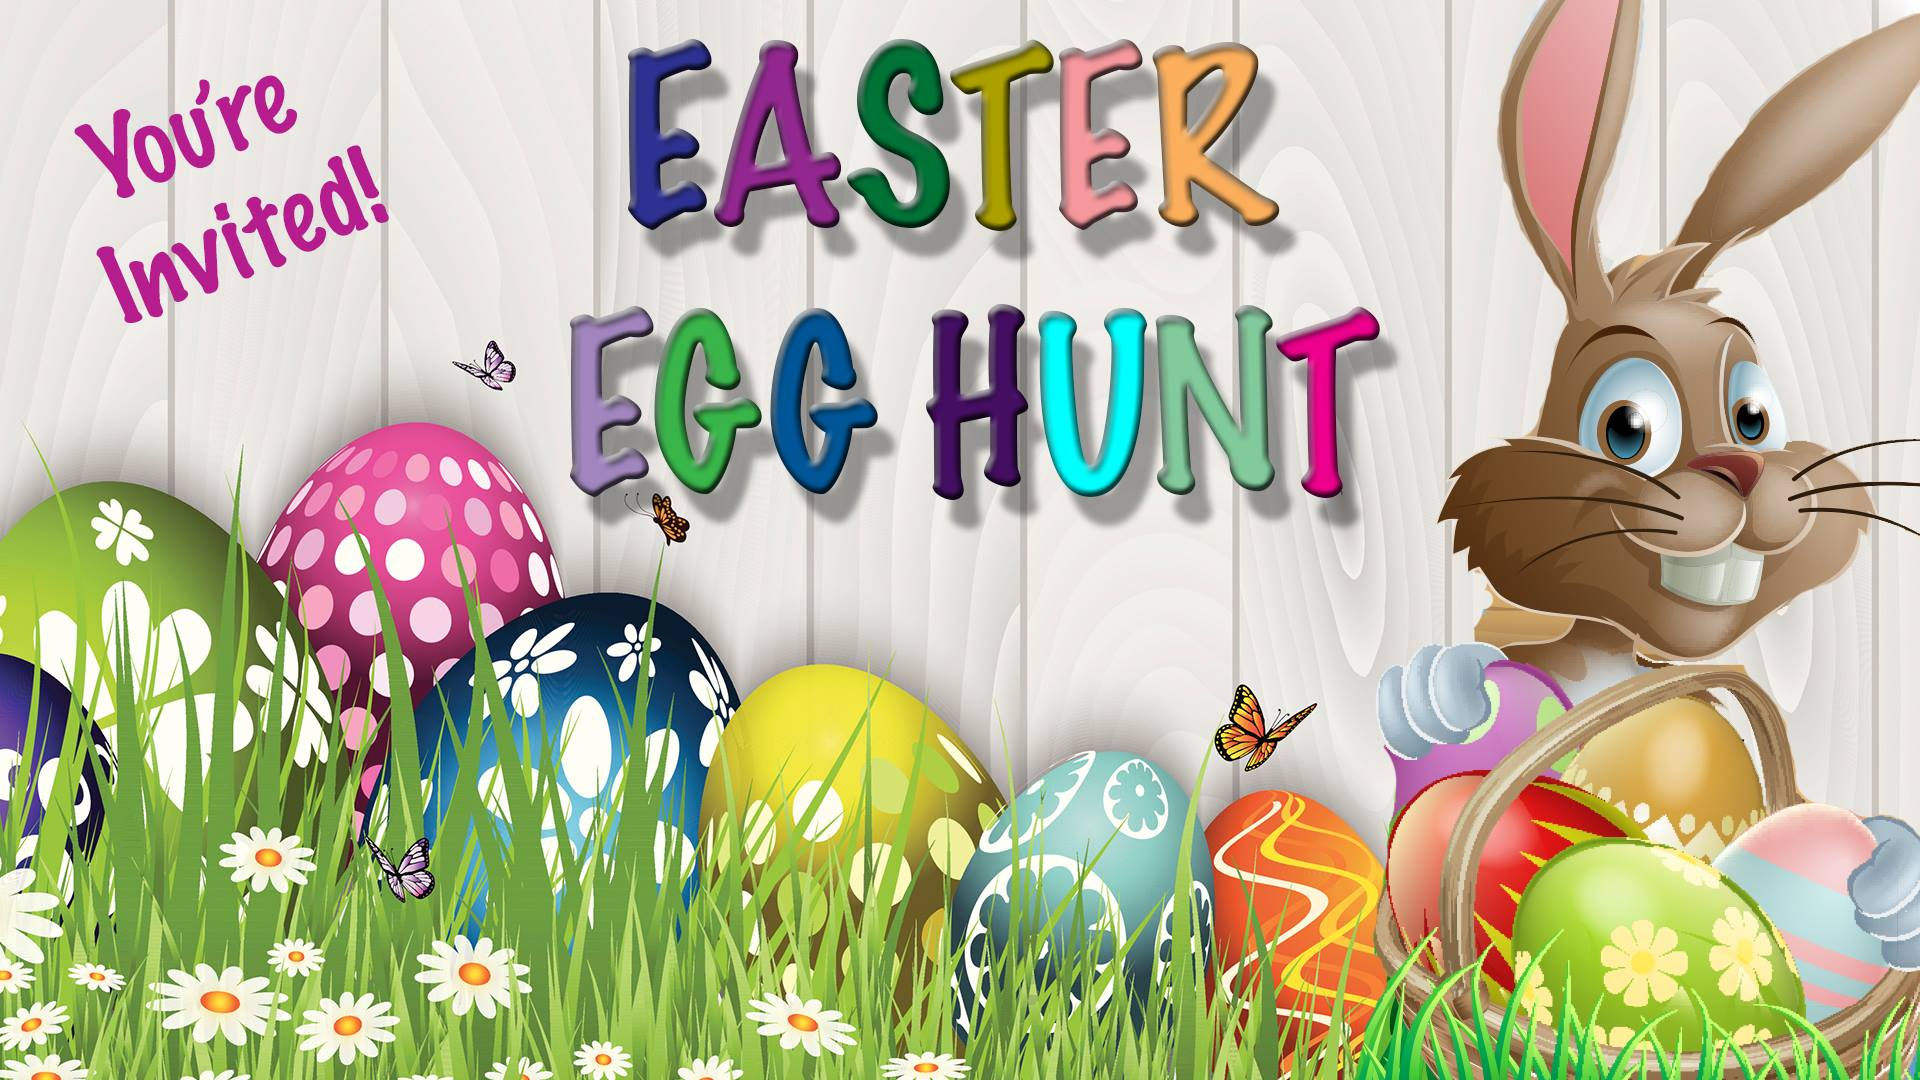 Easter egg hunt @ lynchburg south moose family center  March 24th at 1pm-2:30pm  11409 Marsh Rd. Bealeton, VA 22712  Easter Egg Hunt followed by hot dogs, chips, and lemonade. For children ages 0-8 years (rain or shine). Open to member's of 1727 Moose Family Center and Chapter 1415 immediate family only.